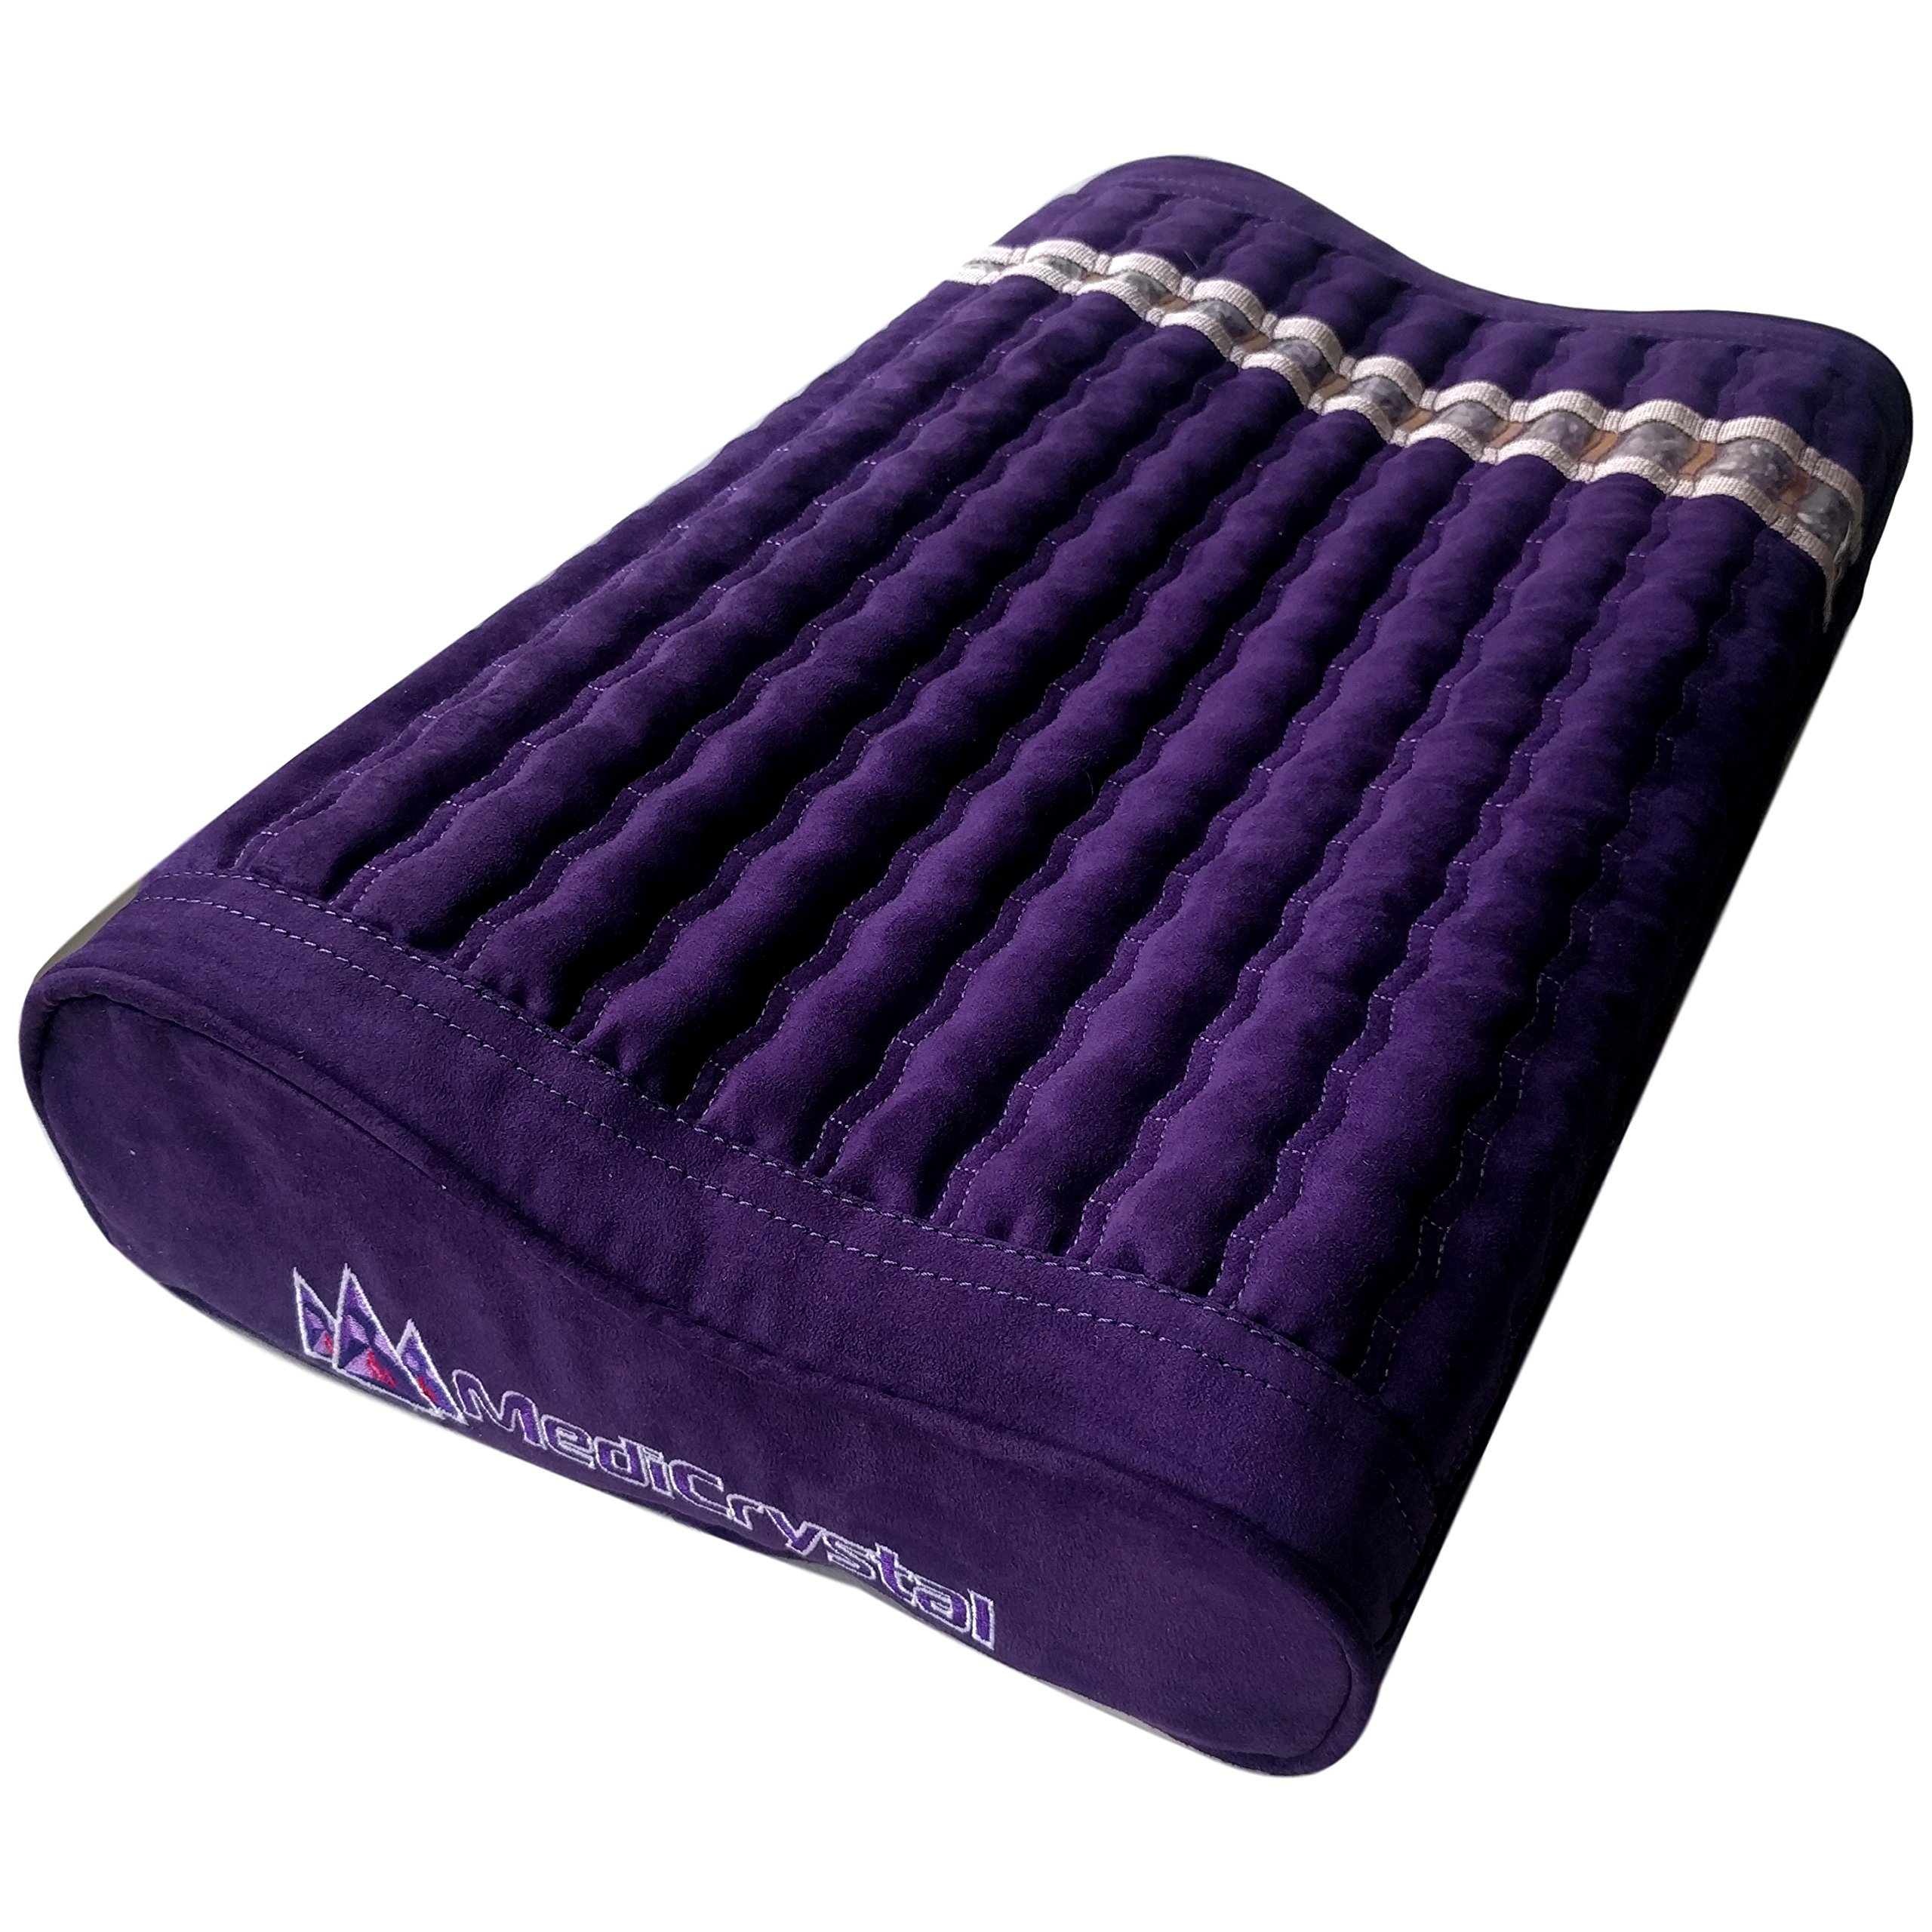 Far Infrared Amethyst Mat Pillow - Emits Negative Ions - Crystal FIR Rays - 100% Natural Amethyst Gemstones - Non Electric - For Headache and Stress Relief - To Sleep Better - GENTLE support - Purple by MediCrystal (Image #5)